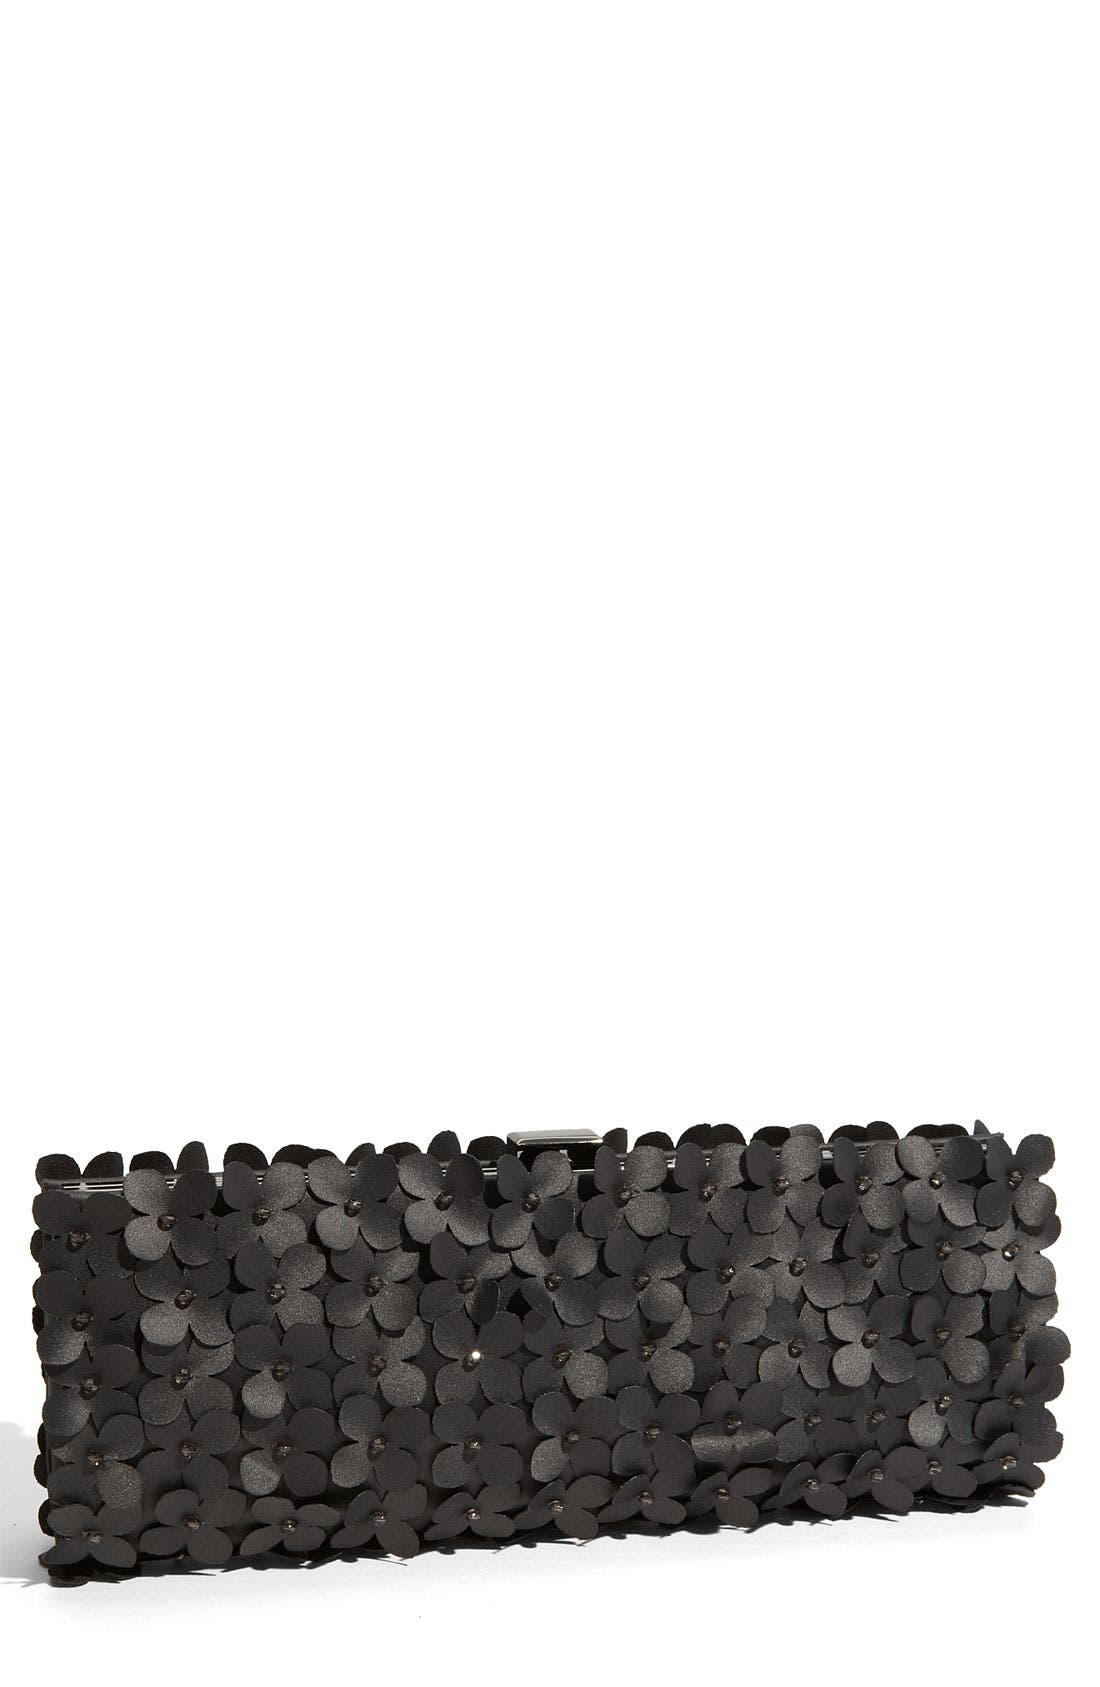 Alternate Image 1 Selected - Sondra Roberts Cutout Flower Frame Clutch